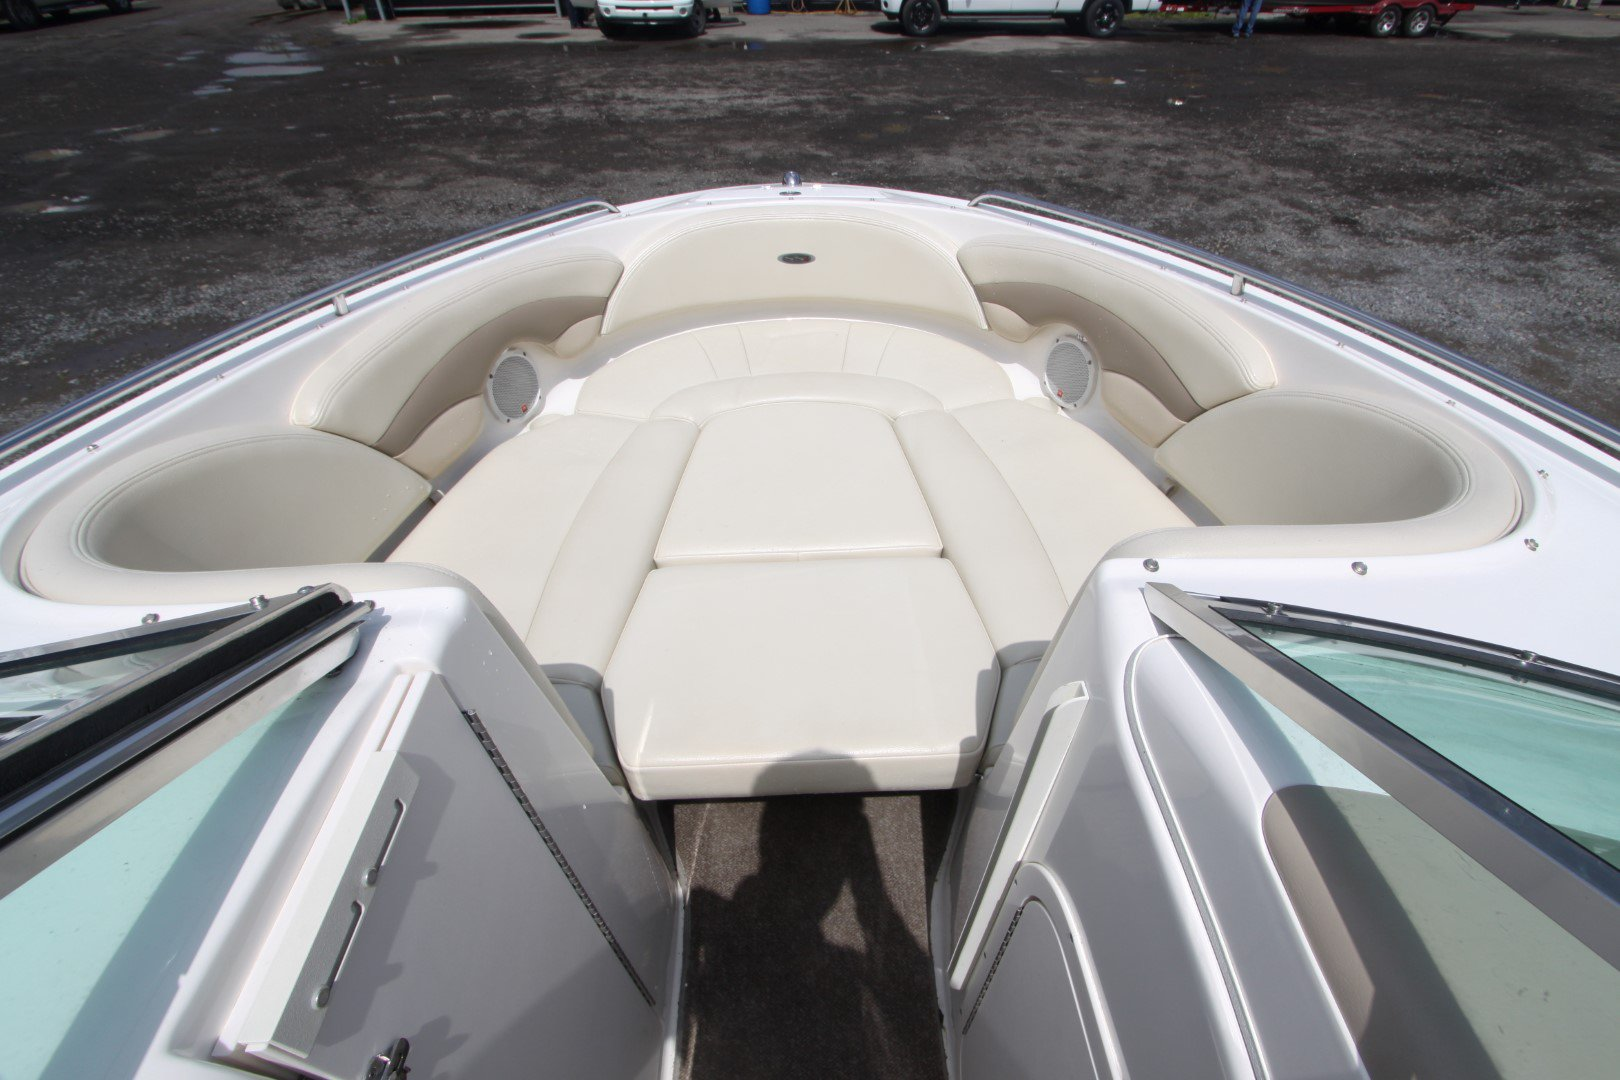 Chaparral 230 SSI - IMG_5930